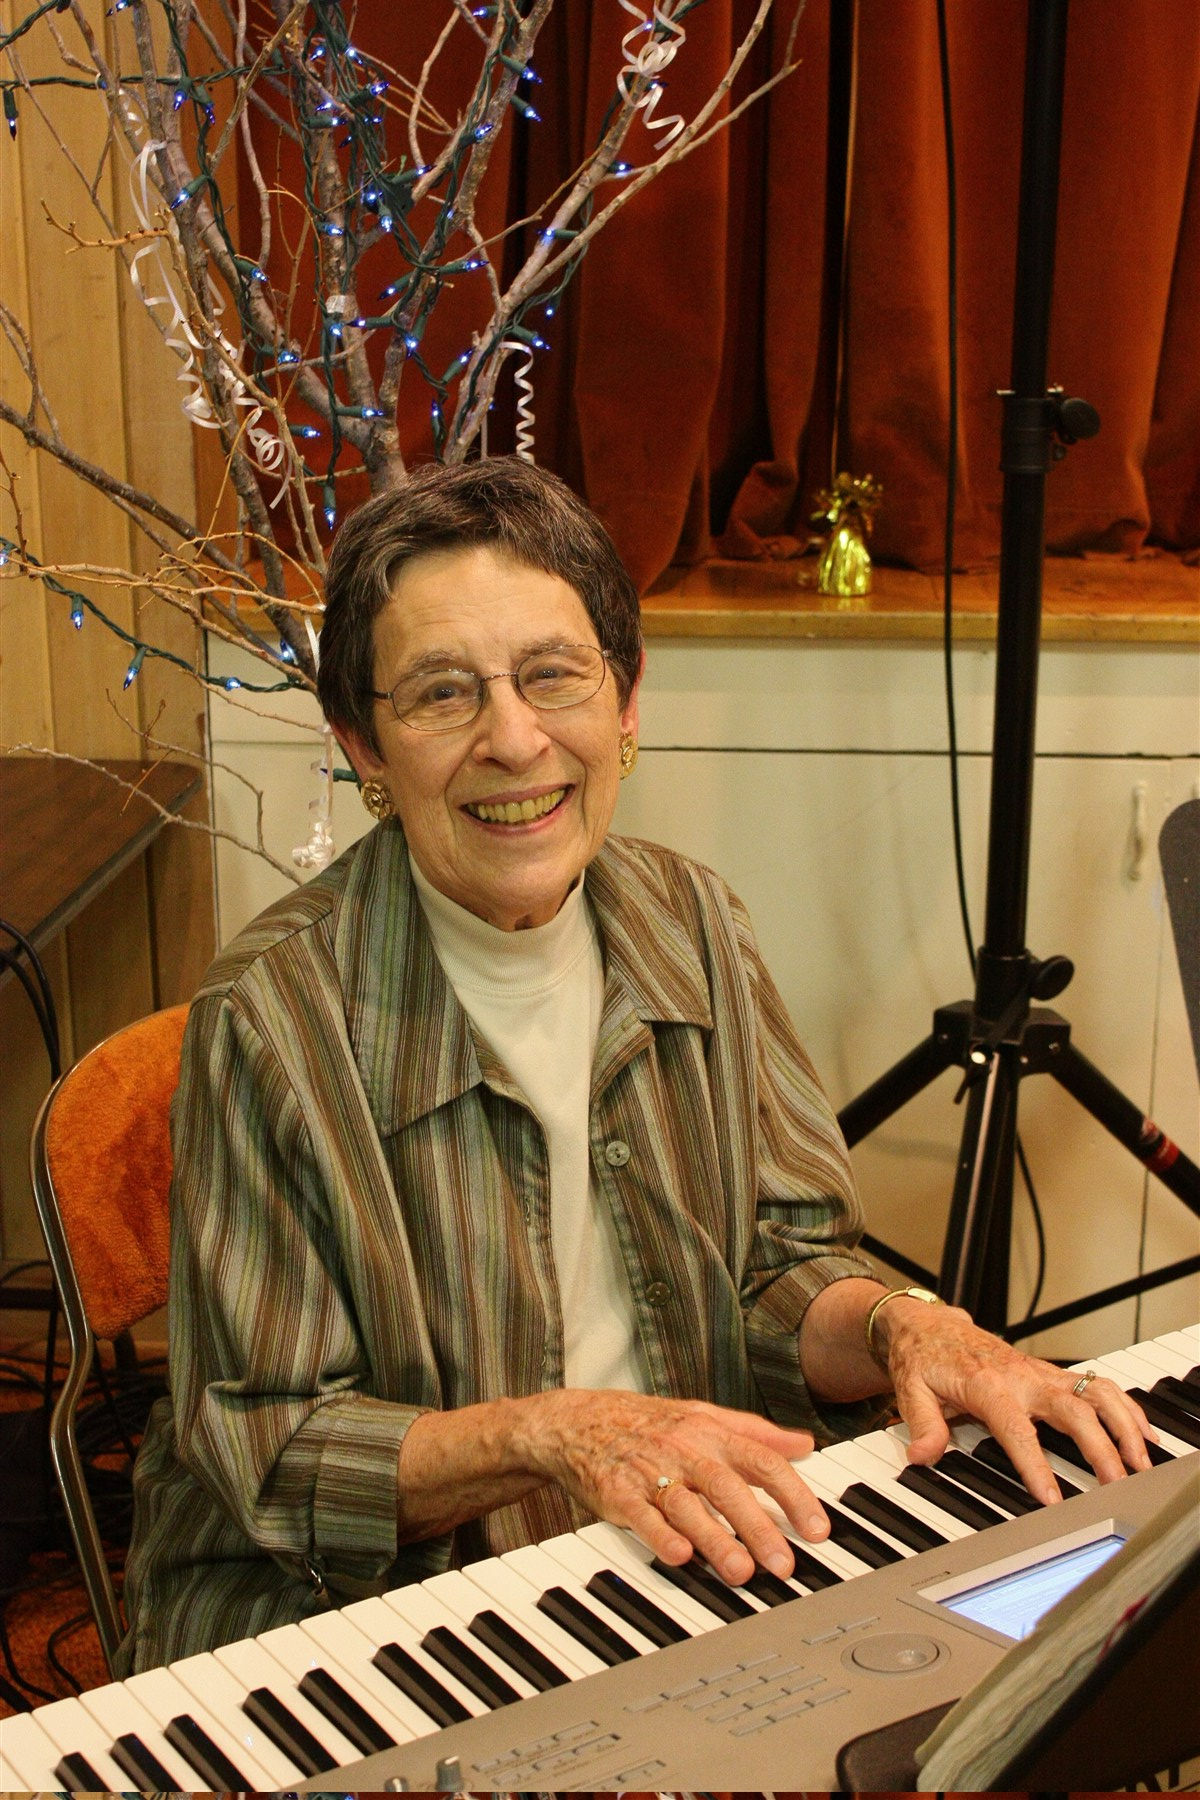 Priscilla Golden, Accompanist